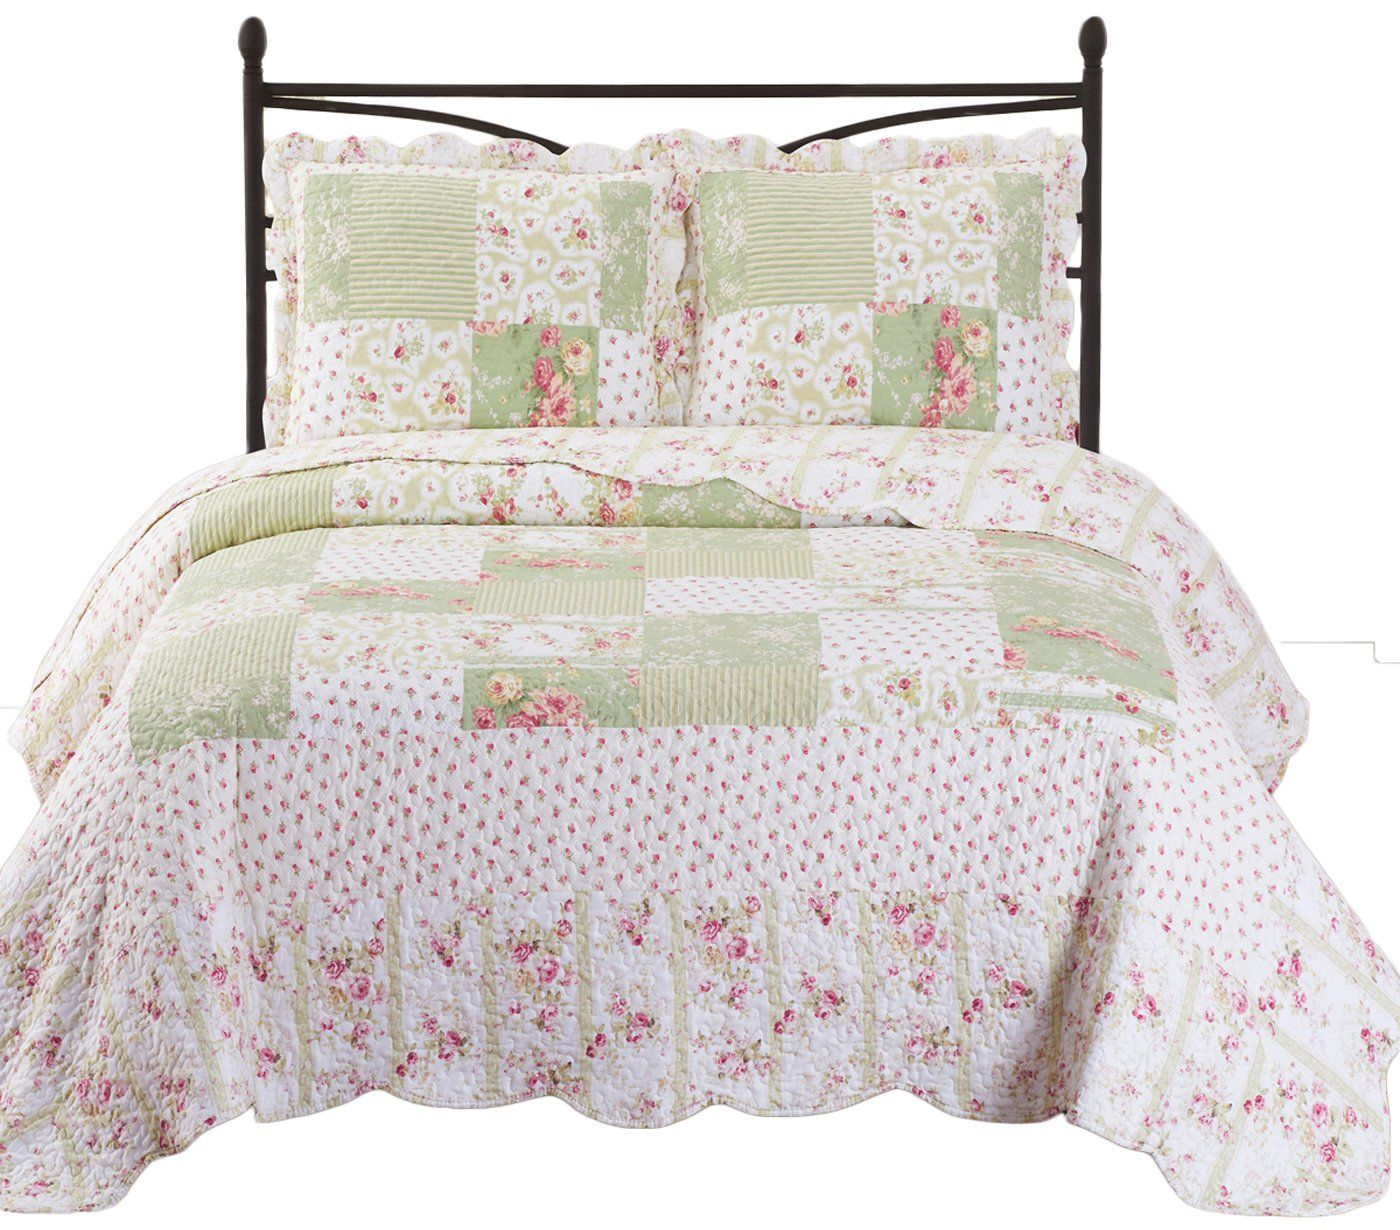 110x96 King Size Quilts